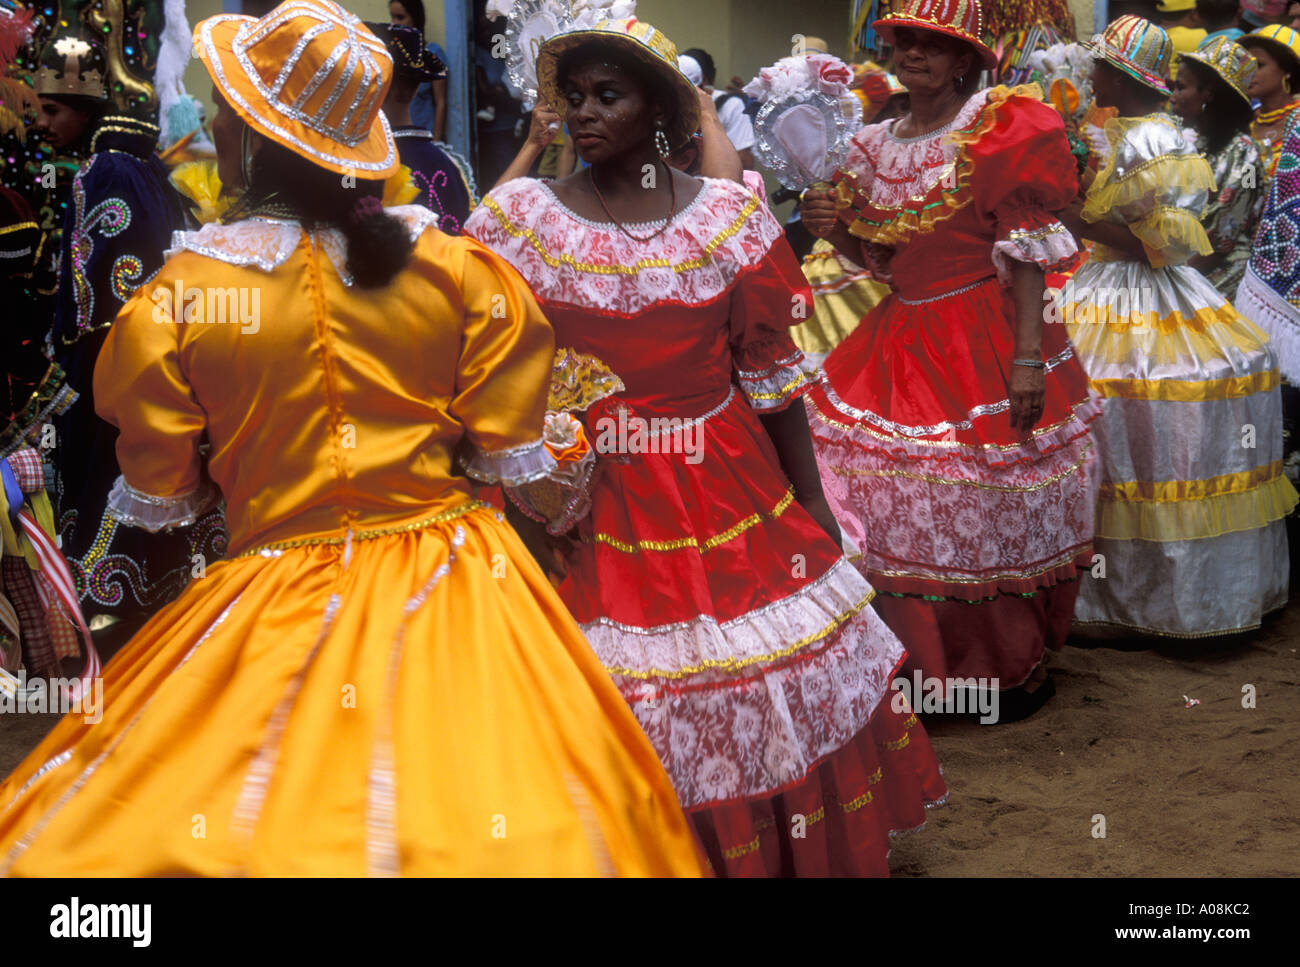 Cultural traditions Folklore Maracatu rural Black women